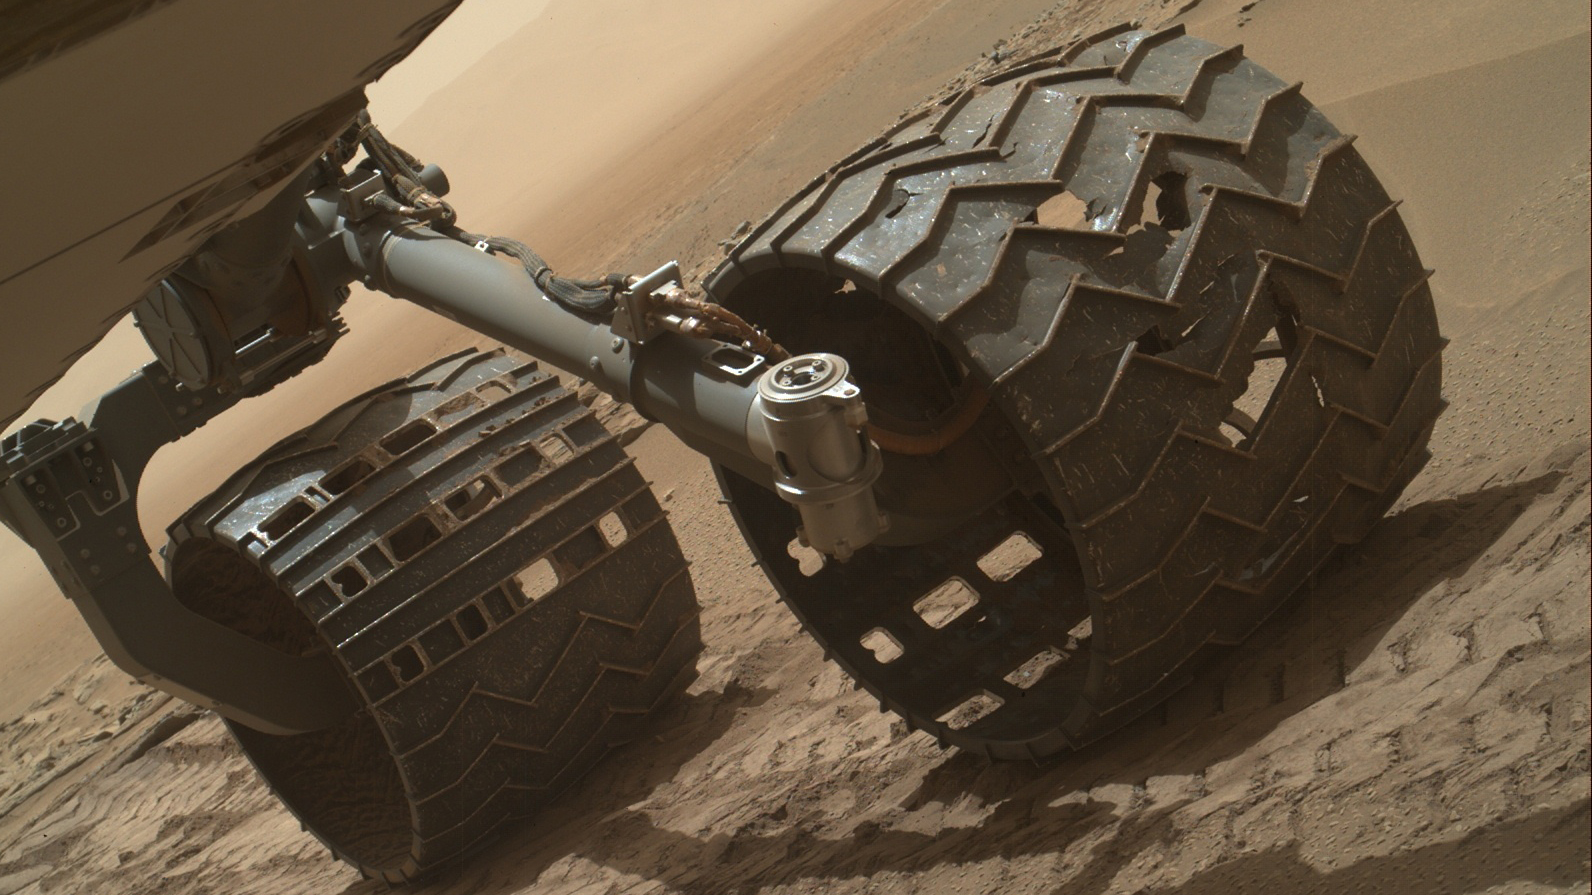 A view of two of the Curiosity rover's wheels that show large holes and damaged sections